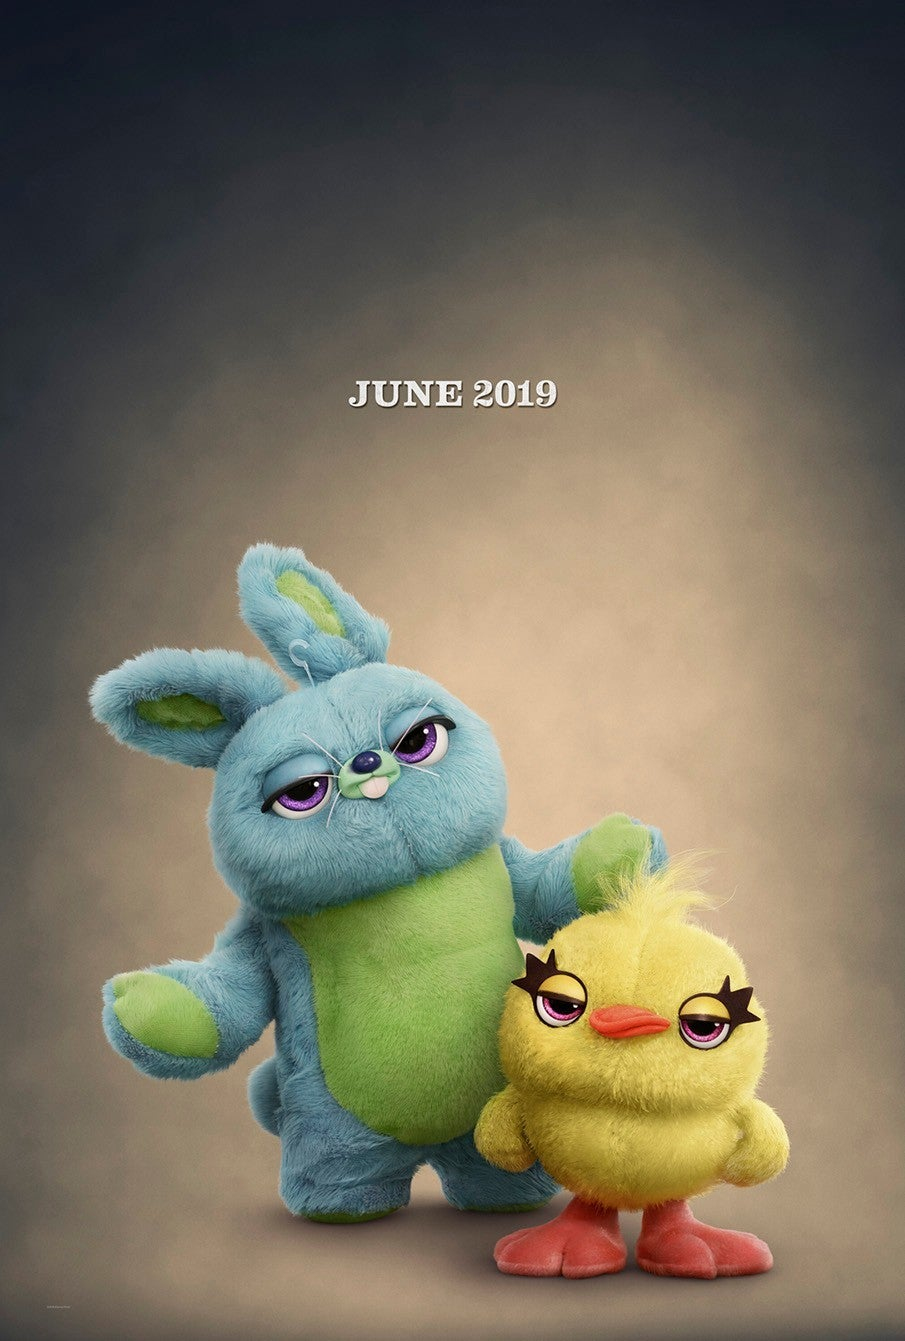 Toy-Story-4-Ducky-Bunny-Poster